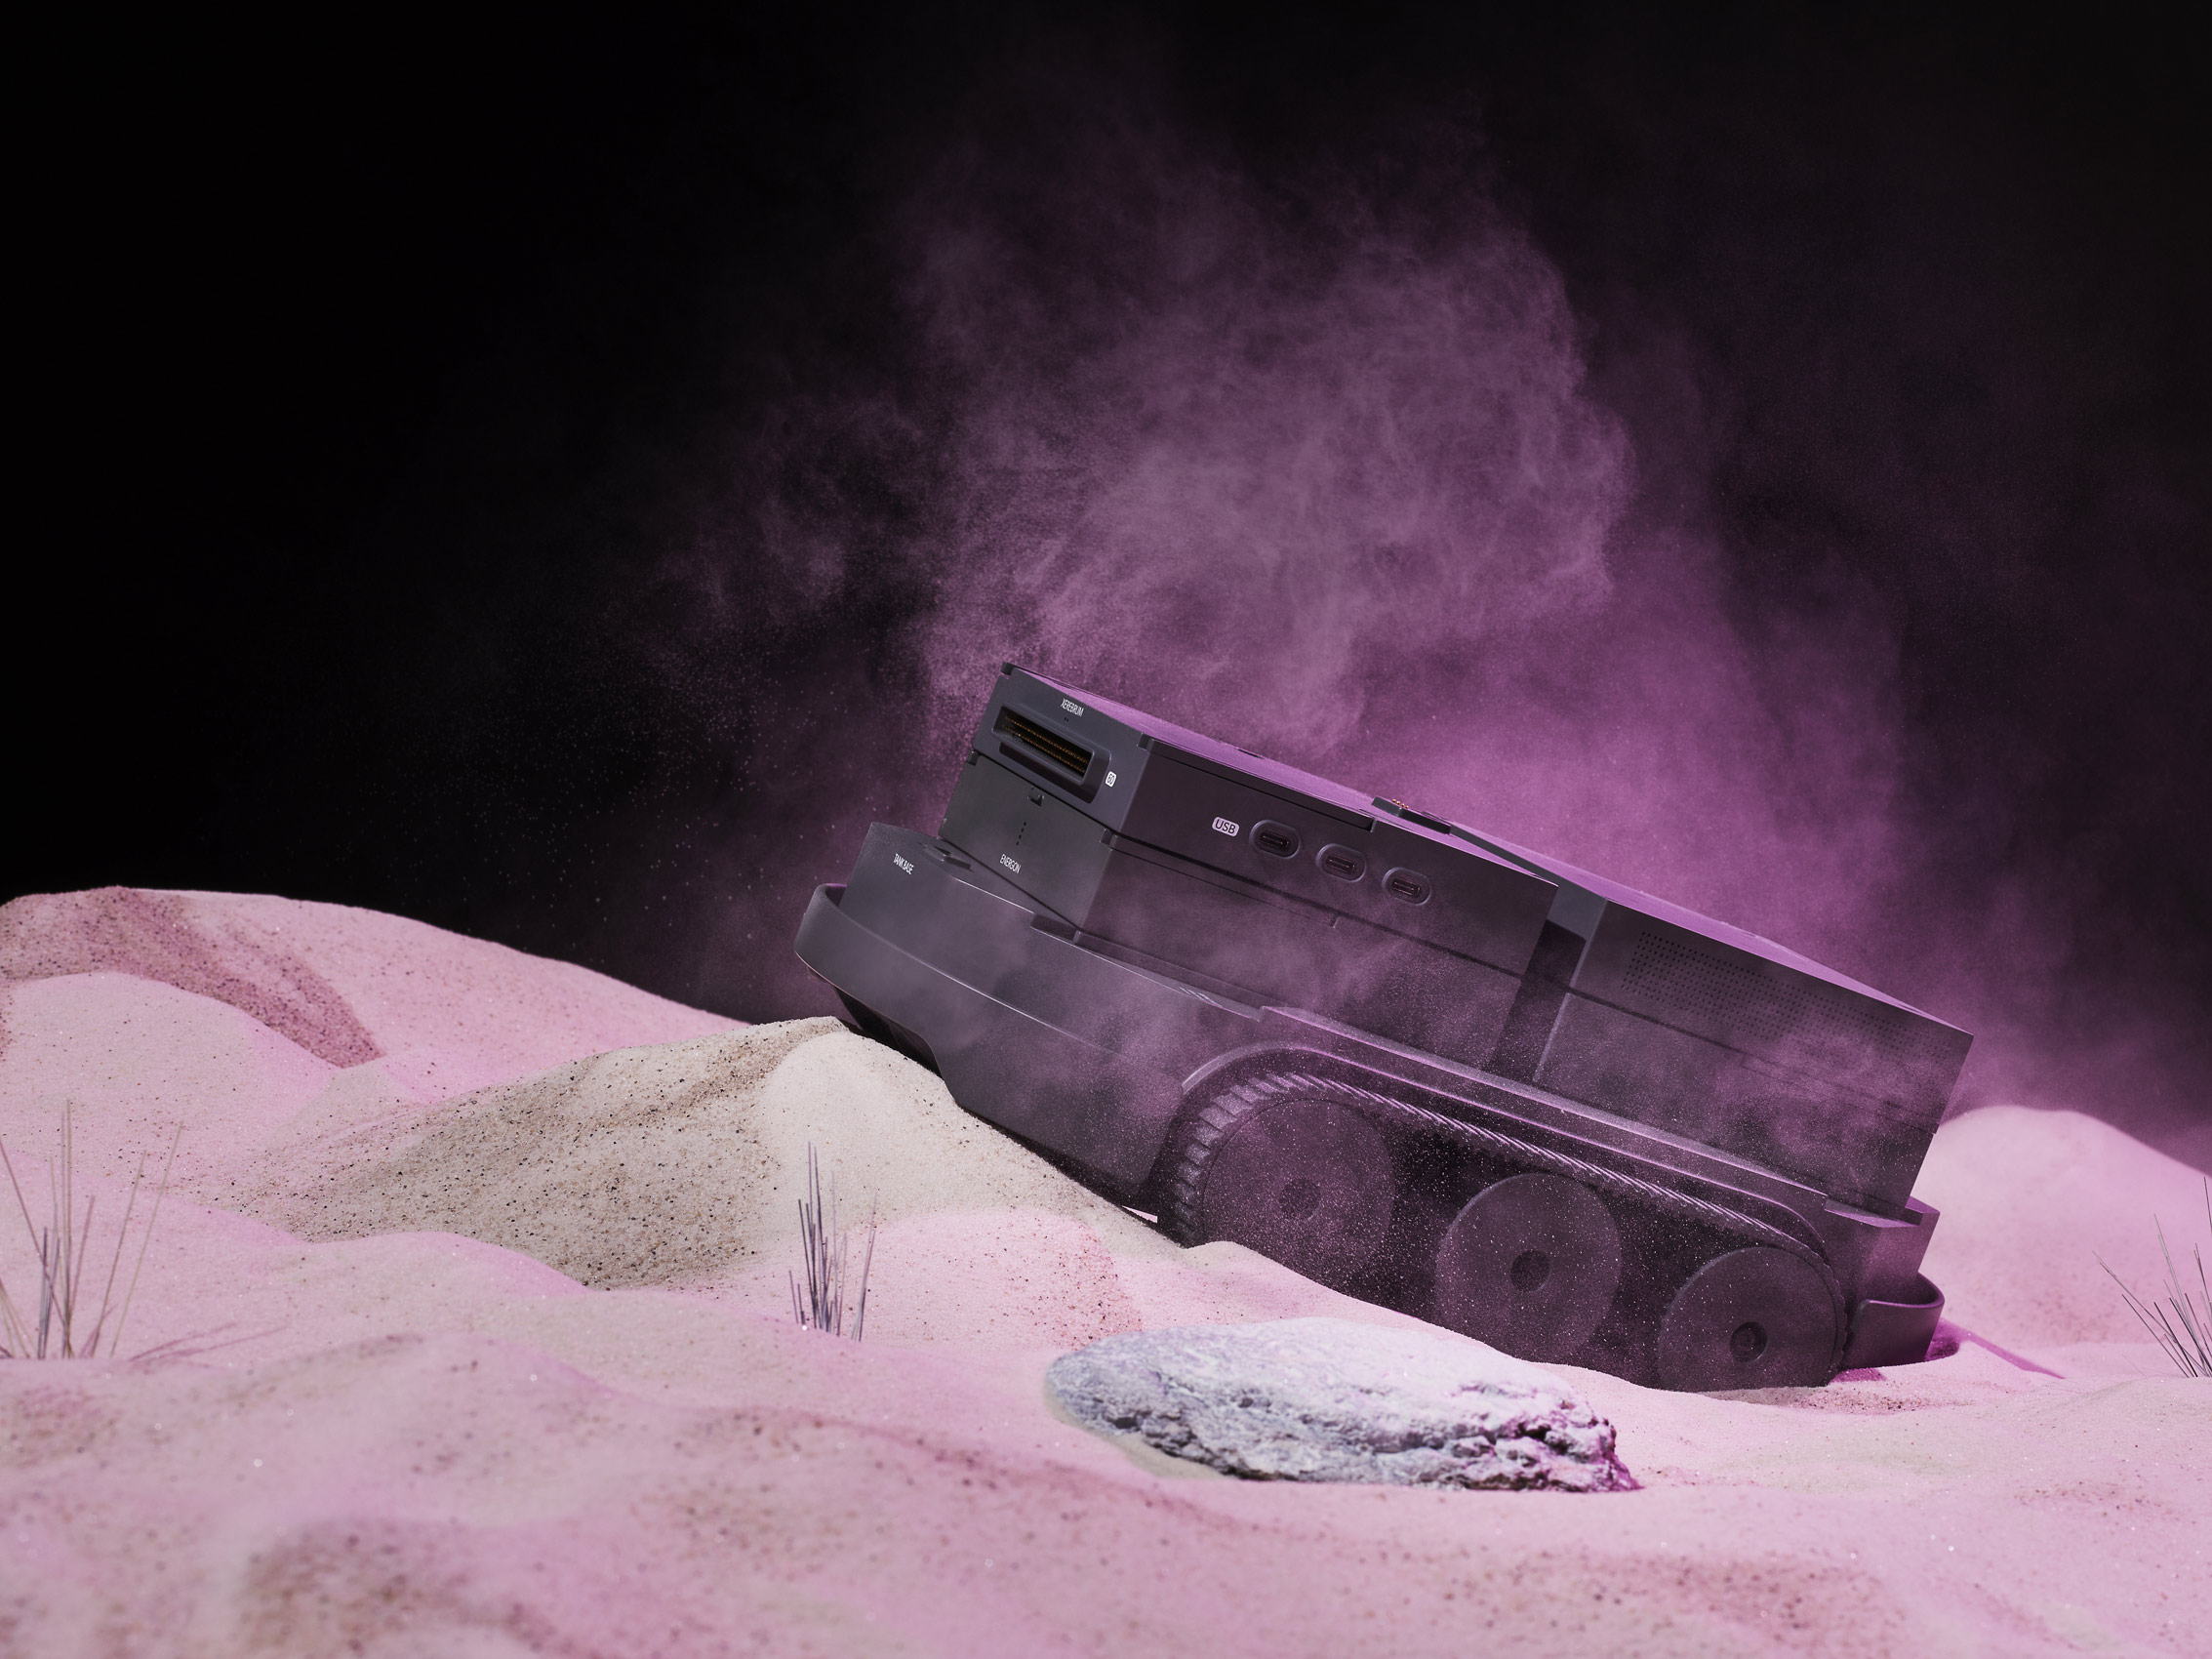 VINCROSS_MIND_KIT_TANK_IN_SAND_159019_F_R1